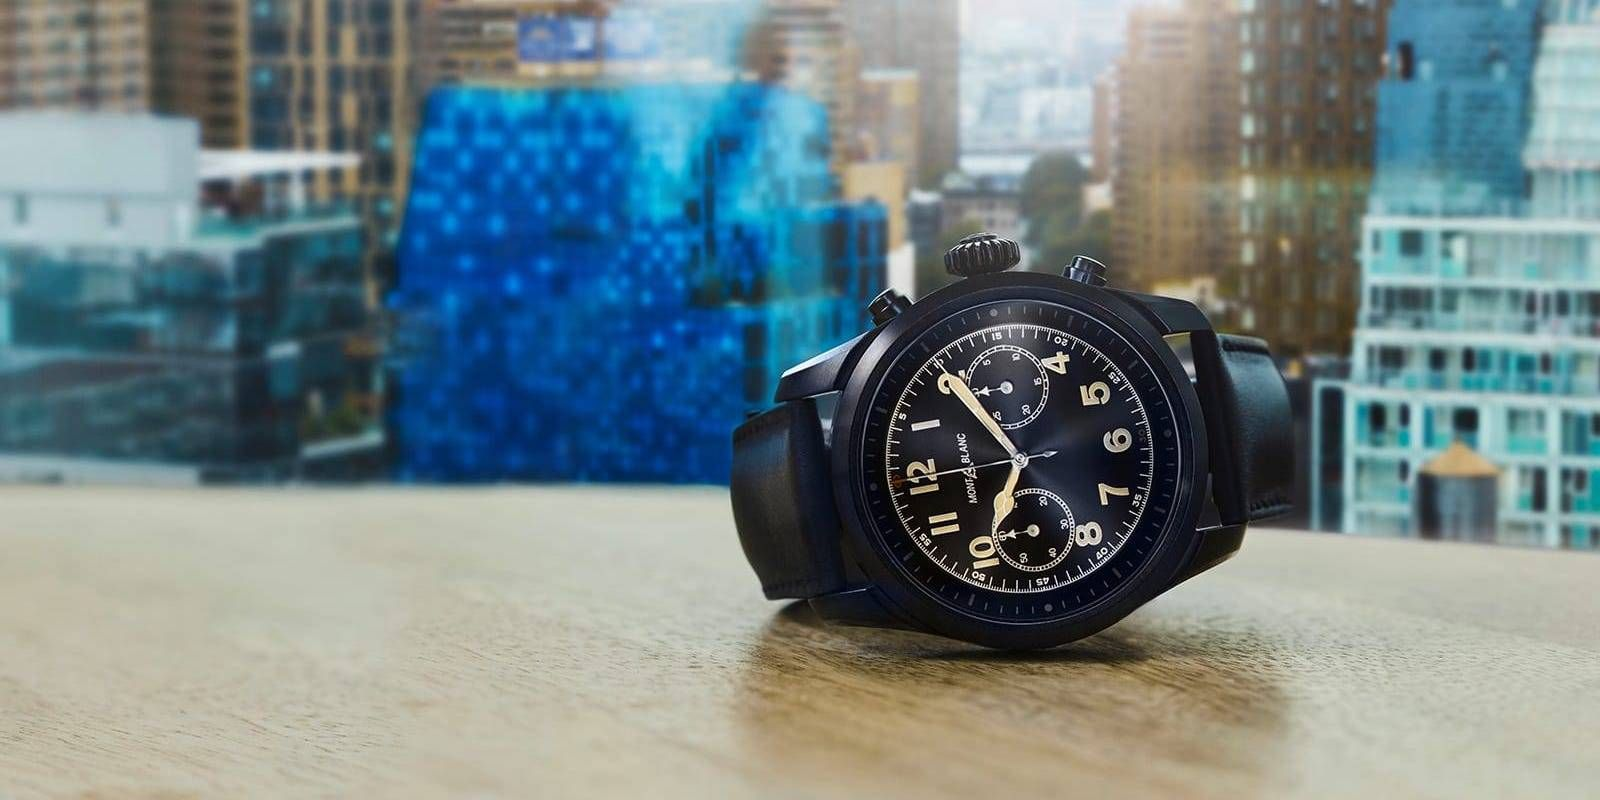 Montblanc Summit 2 is the first Wear OS watch w